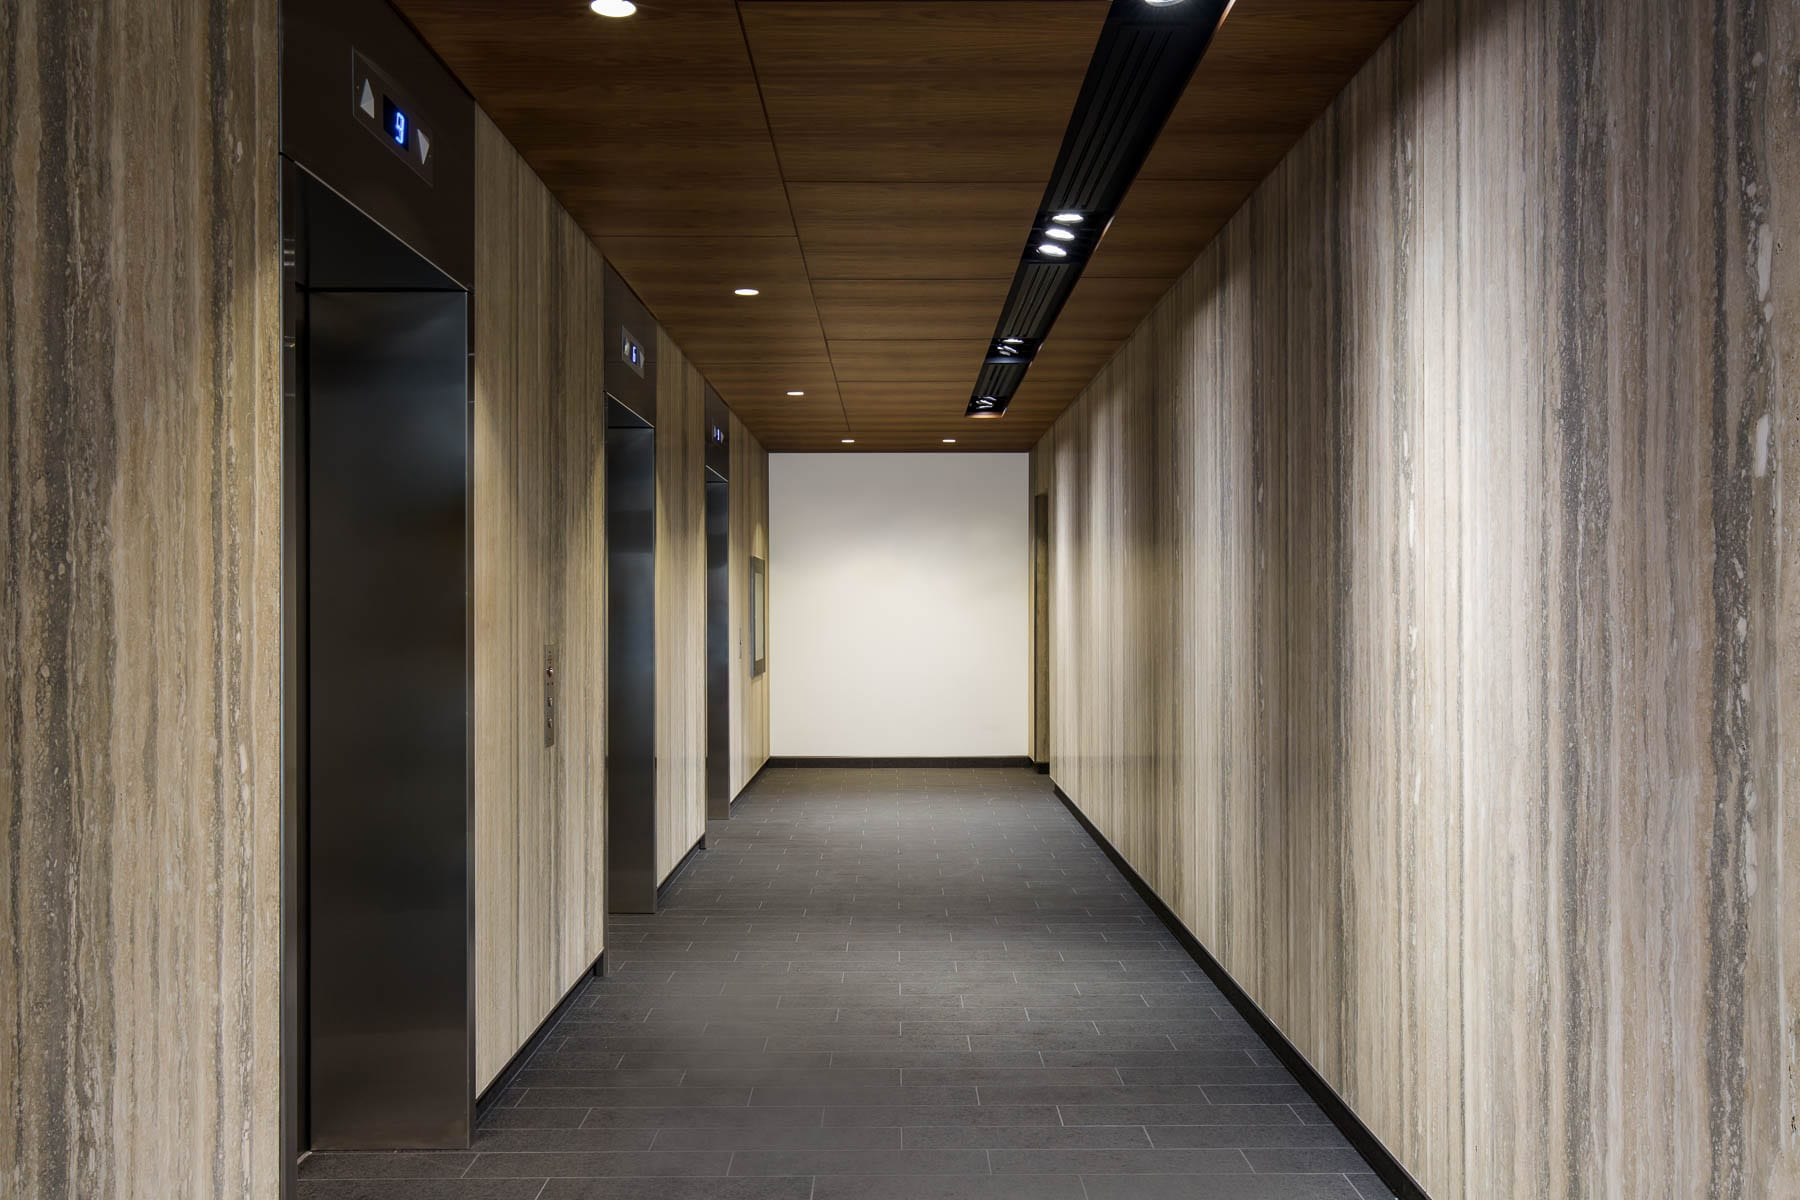 Renovated lobby at 475 West Georgia with new finishes, porcelain floor tiles, wood veneer bulkhead with recessed lighting